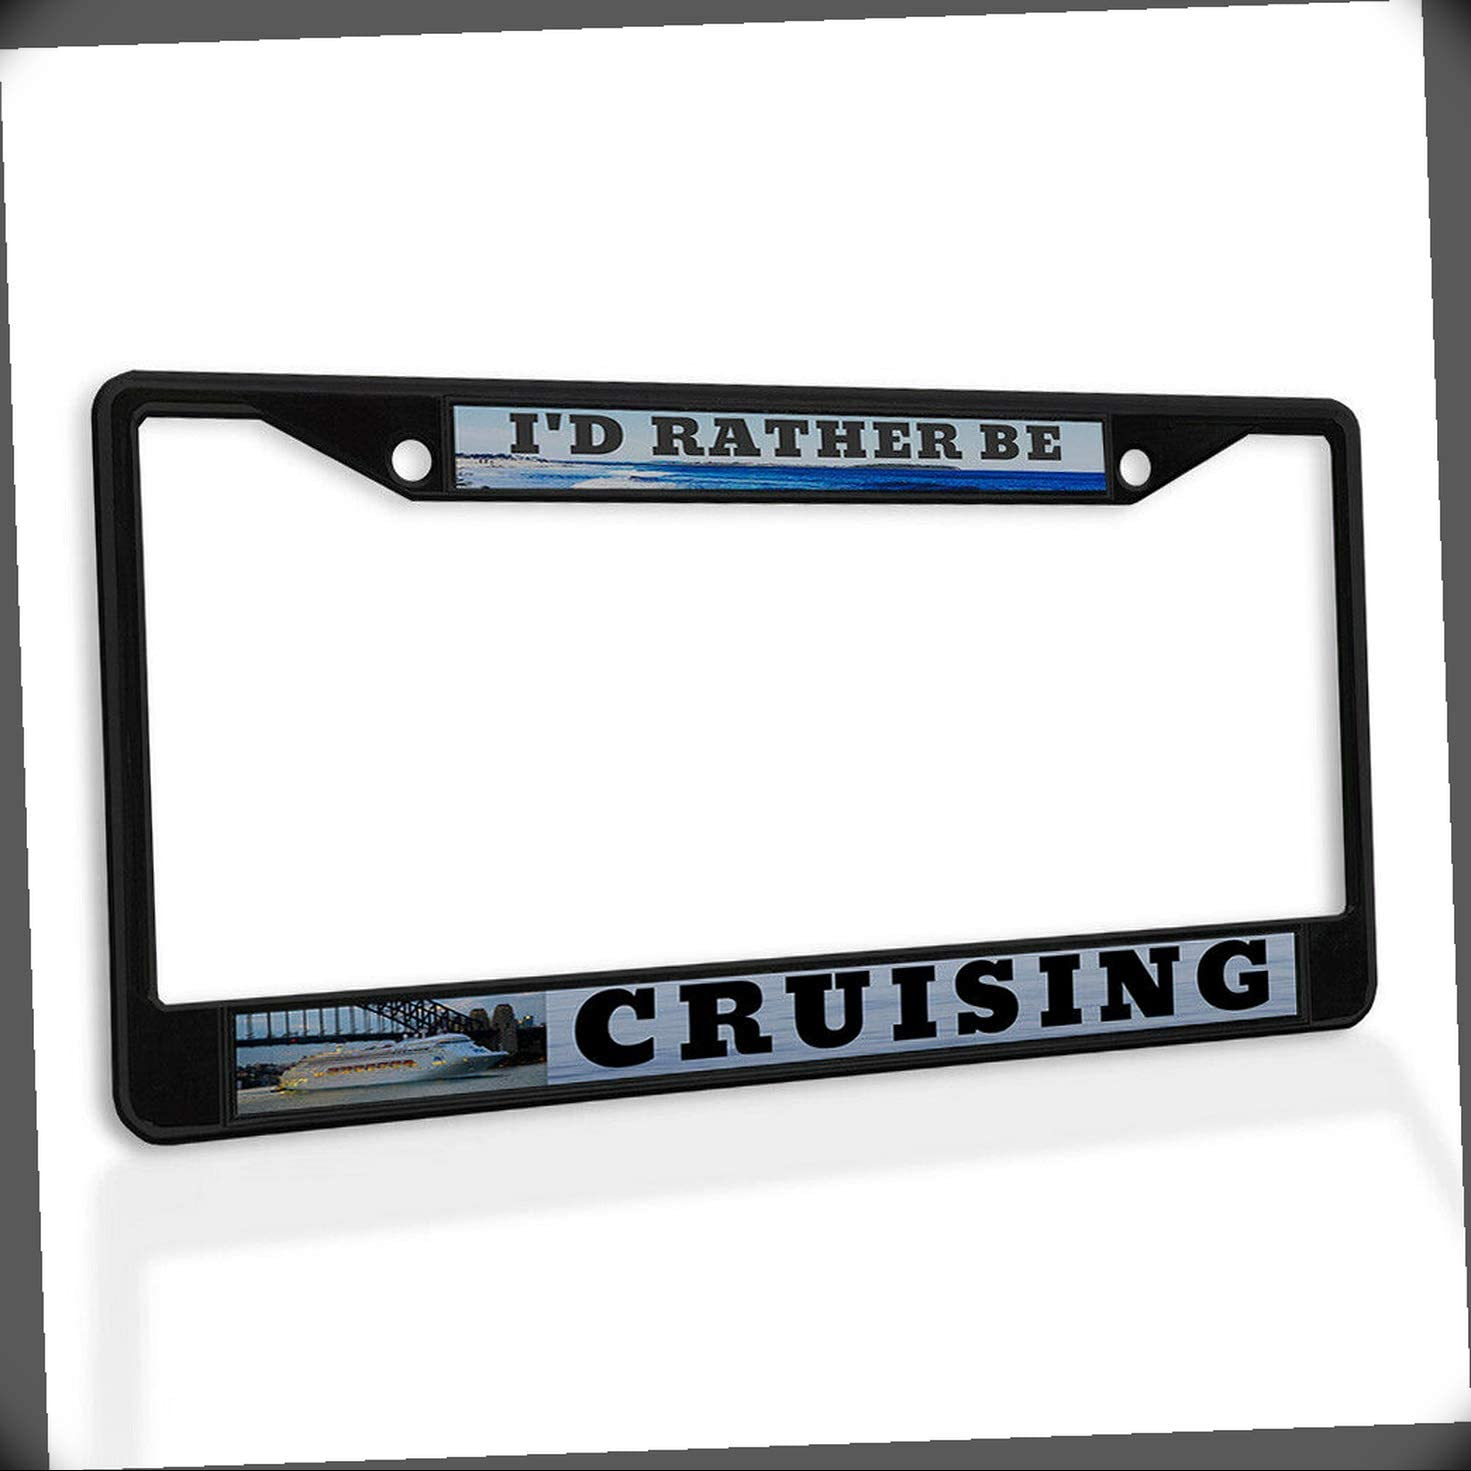 New License Plate Frame I'd Rather Insert Car Ranking TOP20 Be Metal Cruising A surprise price is realized